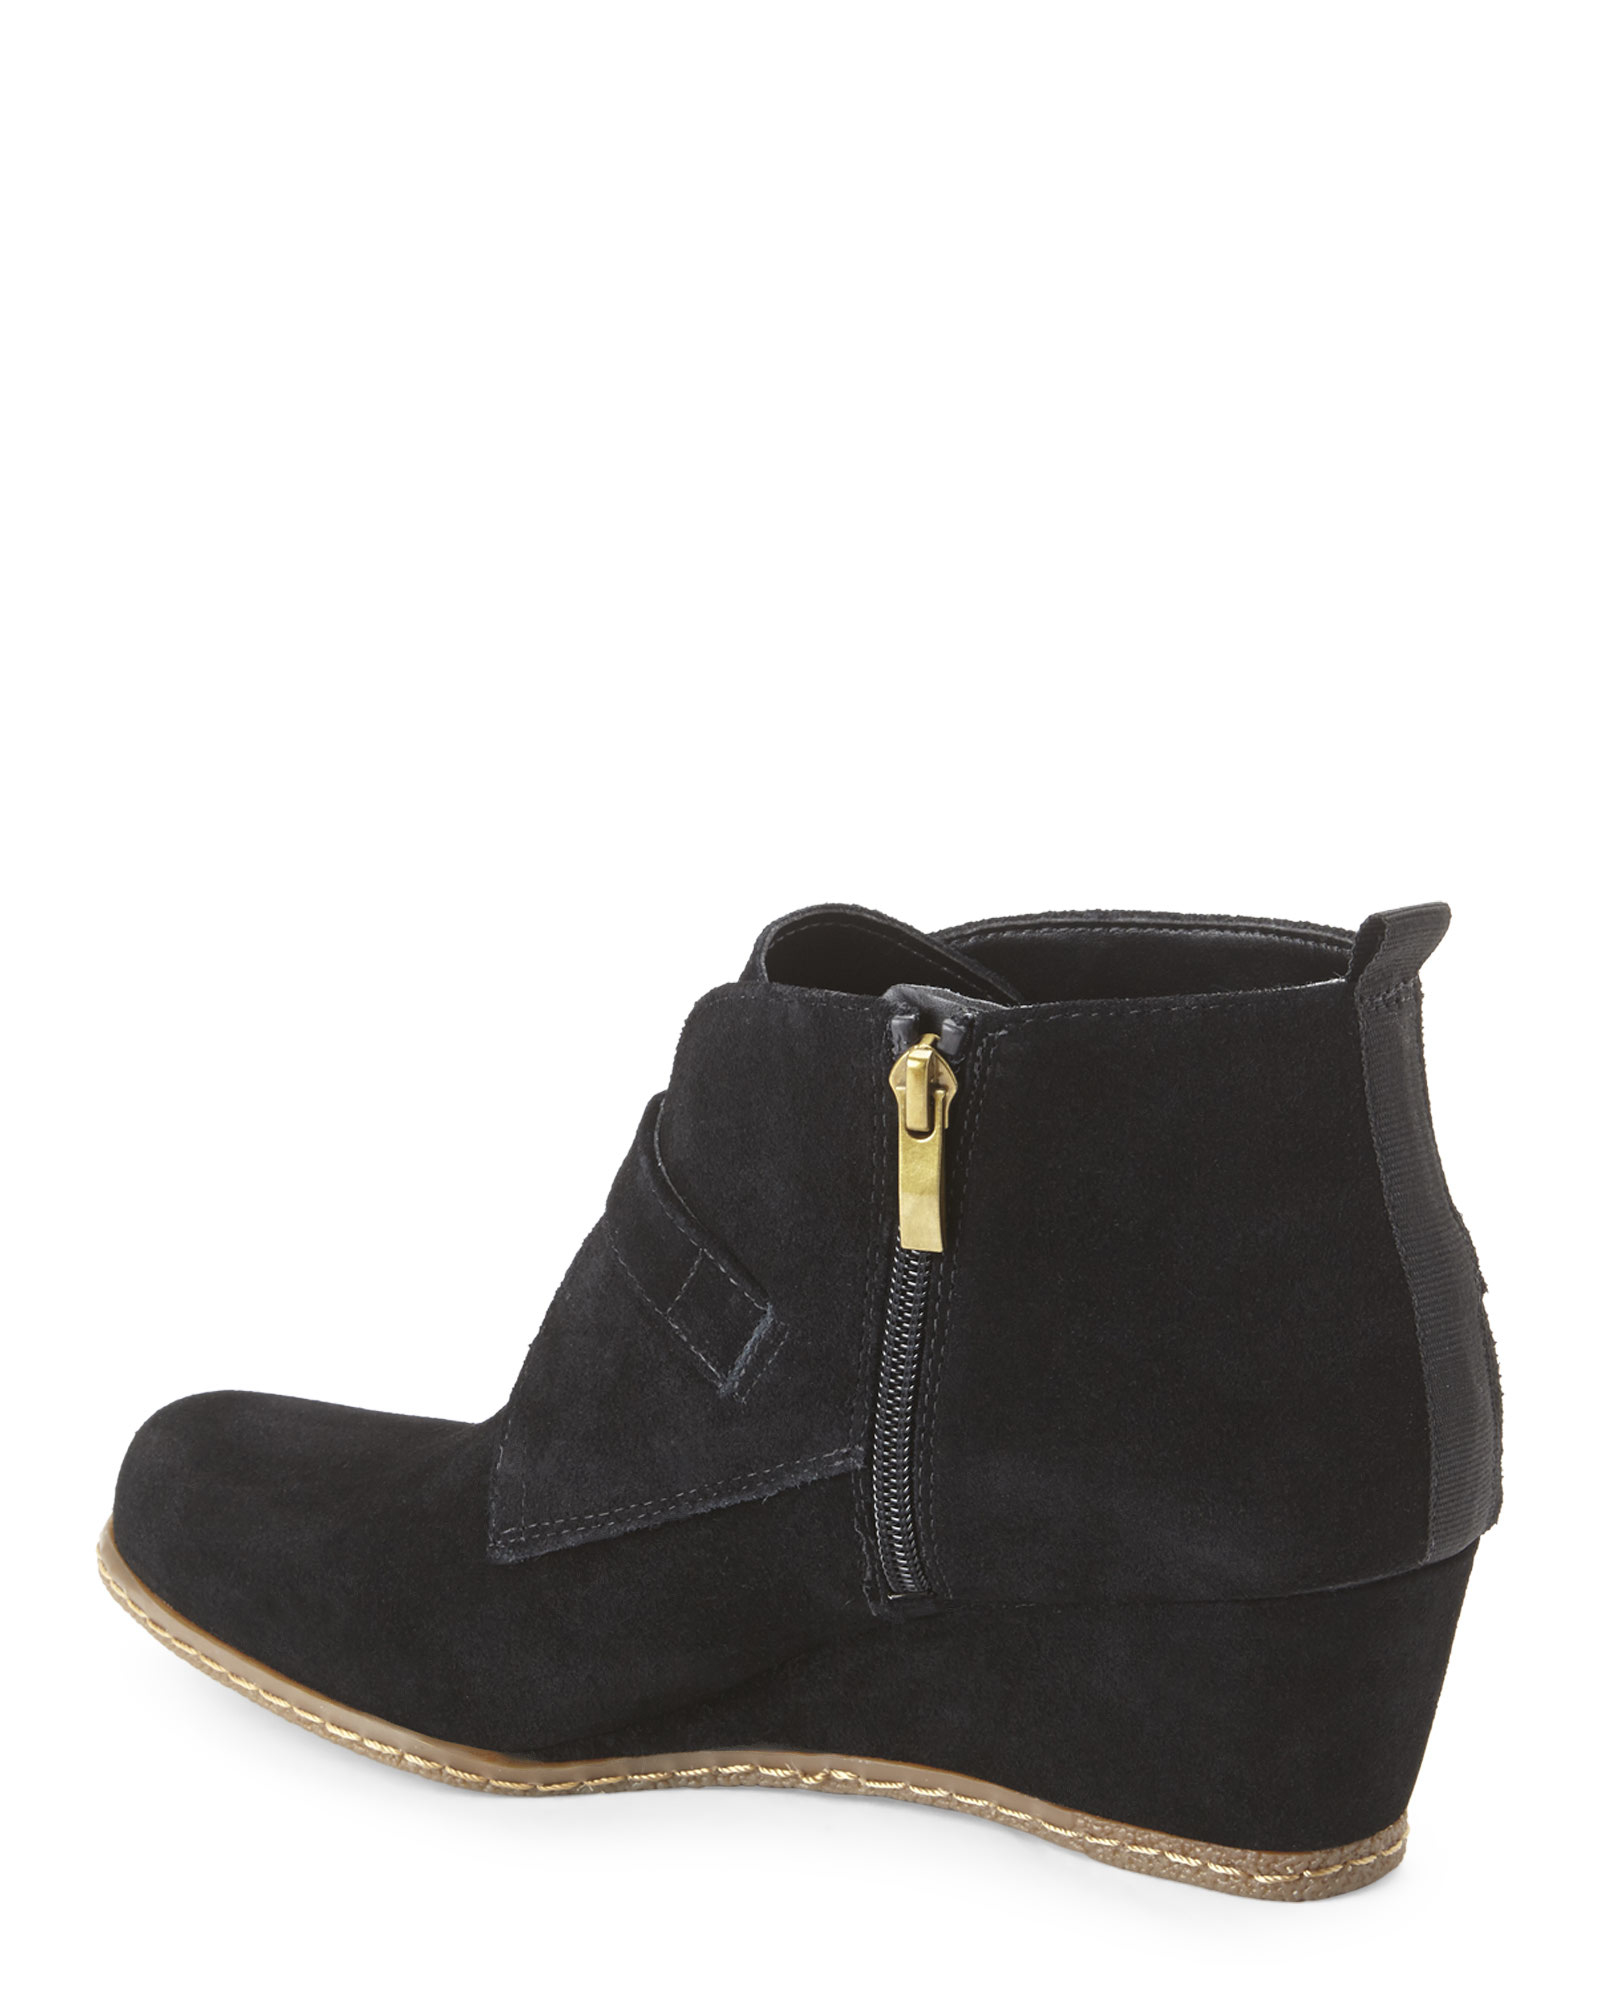 franco sarto black amerosa wedge boots in black lyst